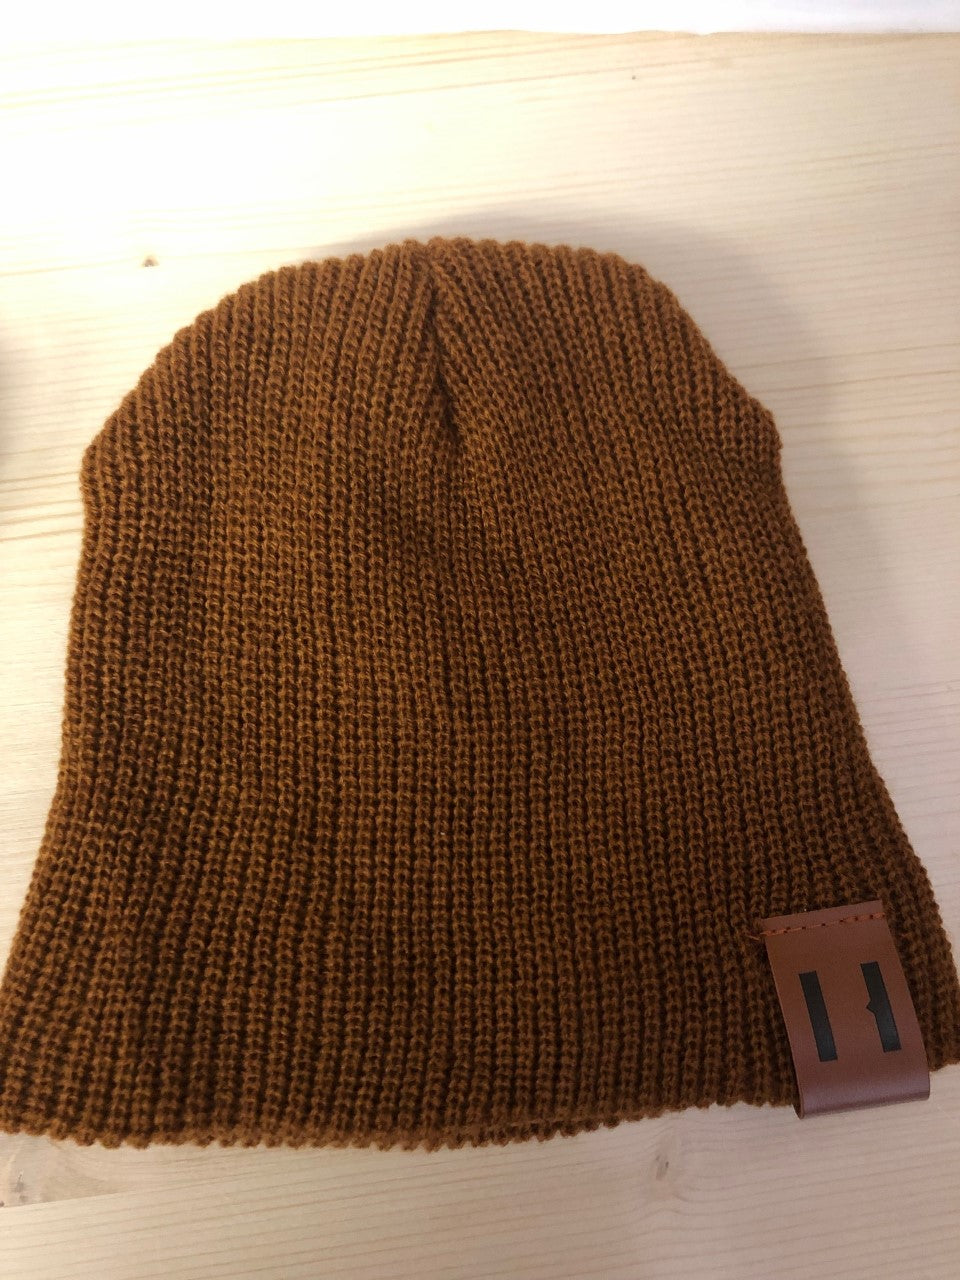 Knit Hat - Lullaby's Boutique